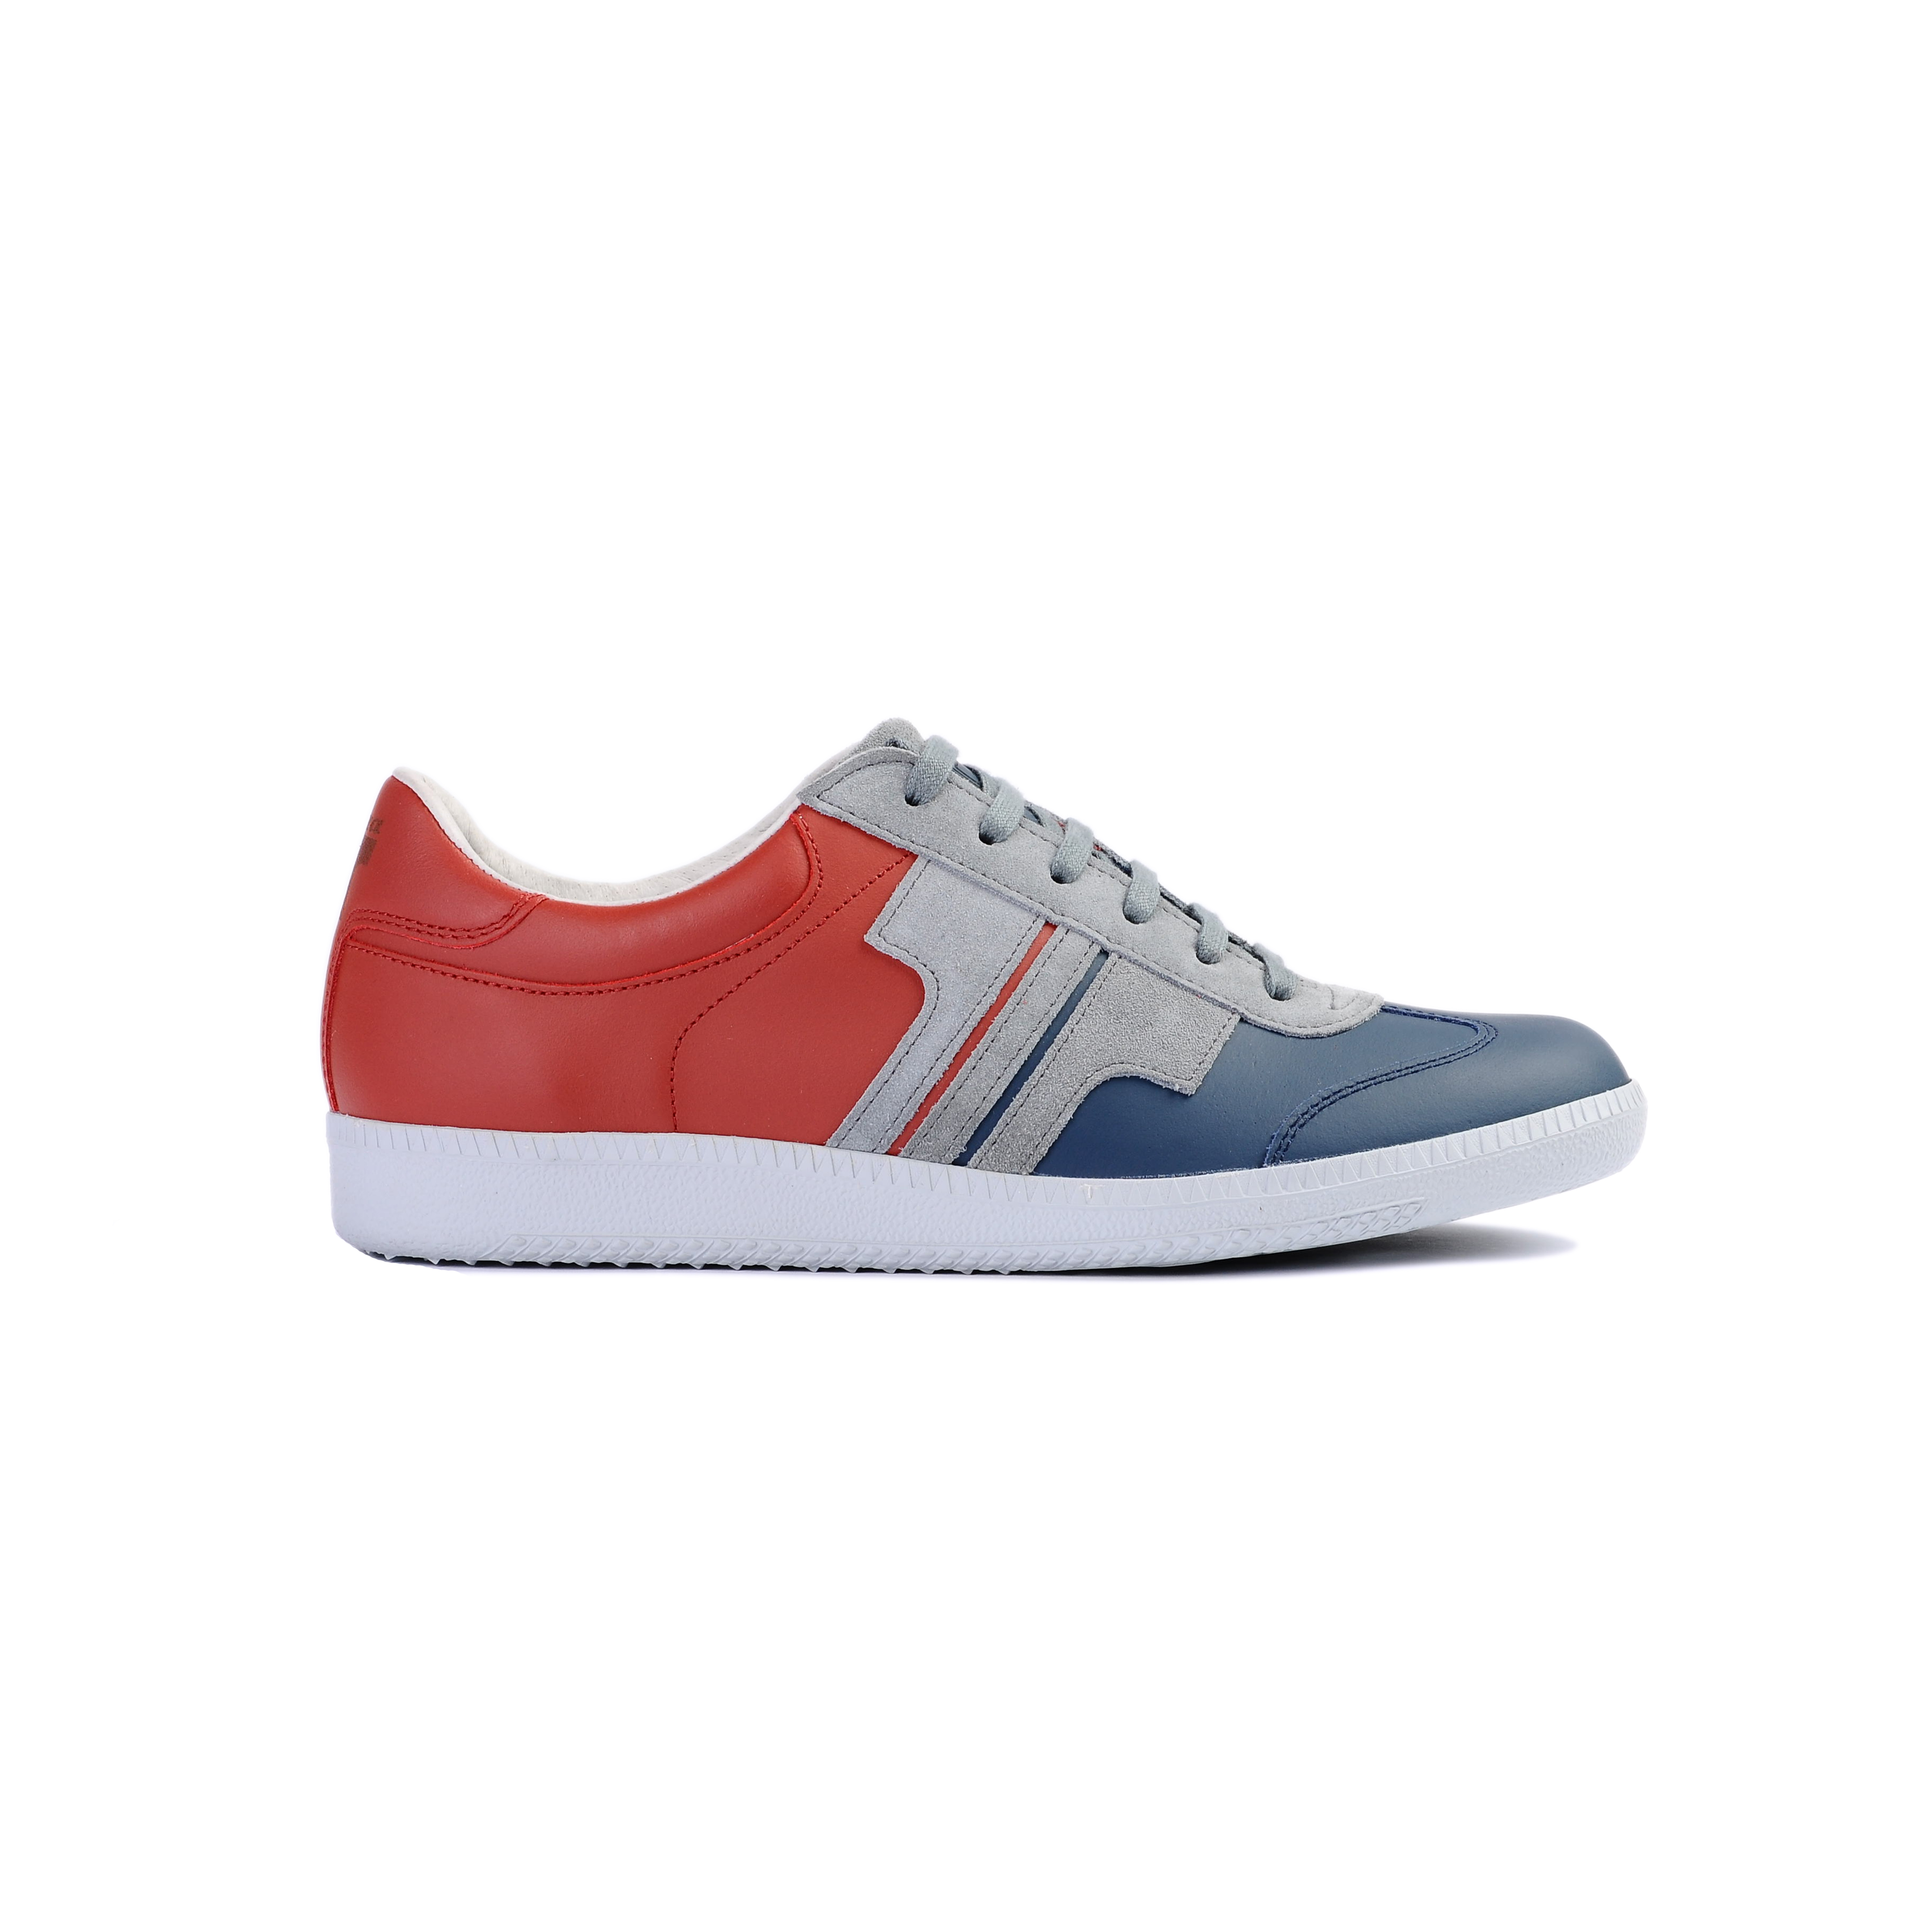 Tisza shoes - Compakt - Navy-grey-cherry